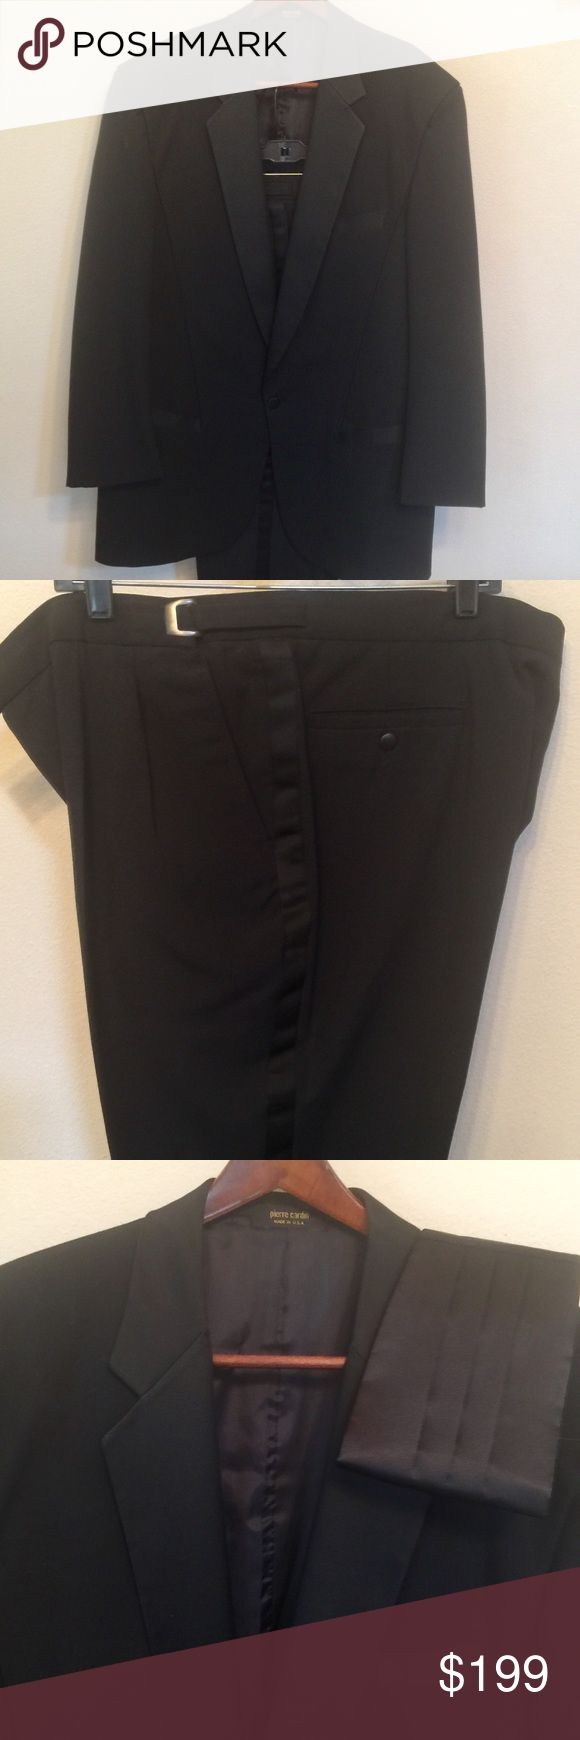 MENS 46XL PIERRE CARDIN TUXEDO, NEARLY NEW ✅✅FLAWLESS PIERRE CARDIN MENS 46XL BLACK TUXEDO‼️ Purchased at Paula's Bridal Boutique Includes Cumber bun, 40R Tuxedo Pants (adjustable)‼️ ABSOLUTELY, FLAWLESS, VERY HANDSOME TUXEDO! Don't buy or rent! Dry clean and OWN YOUR OWN TUXEDO! ❌⭕️❌ Pierre Cardin Suits & Blazers Tuxedos